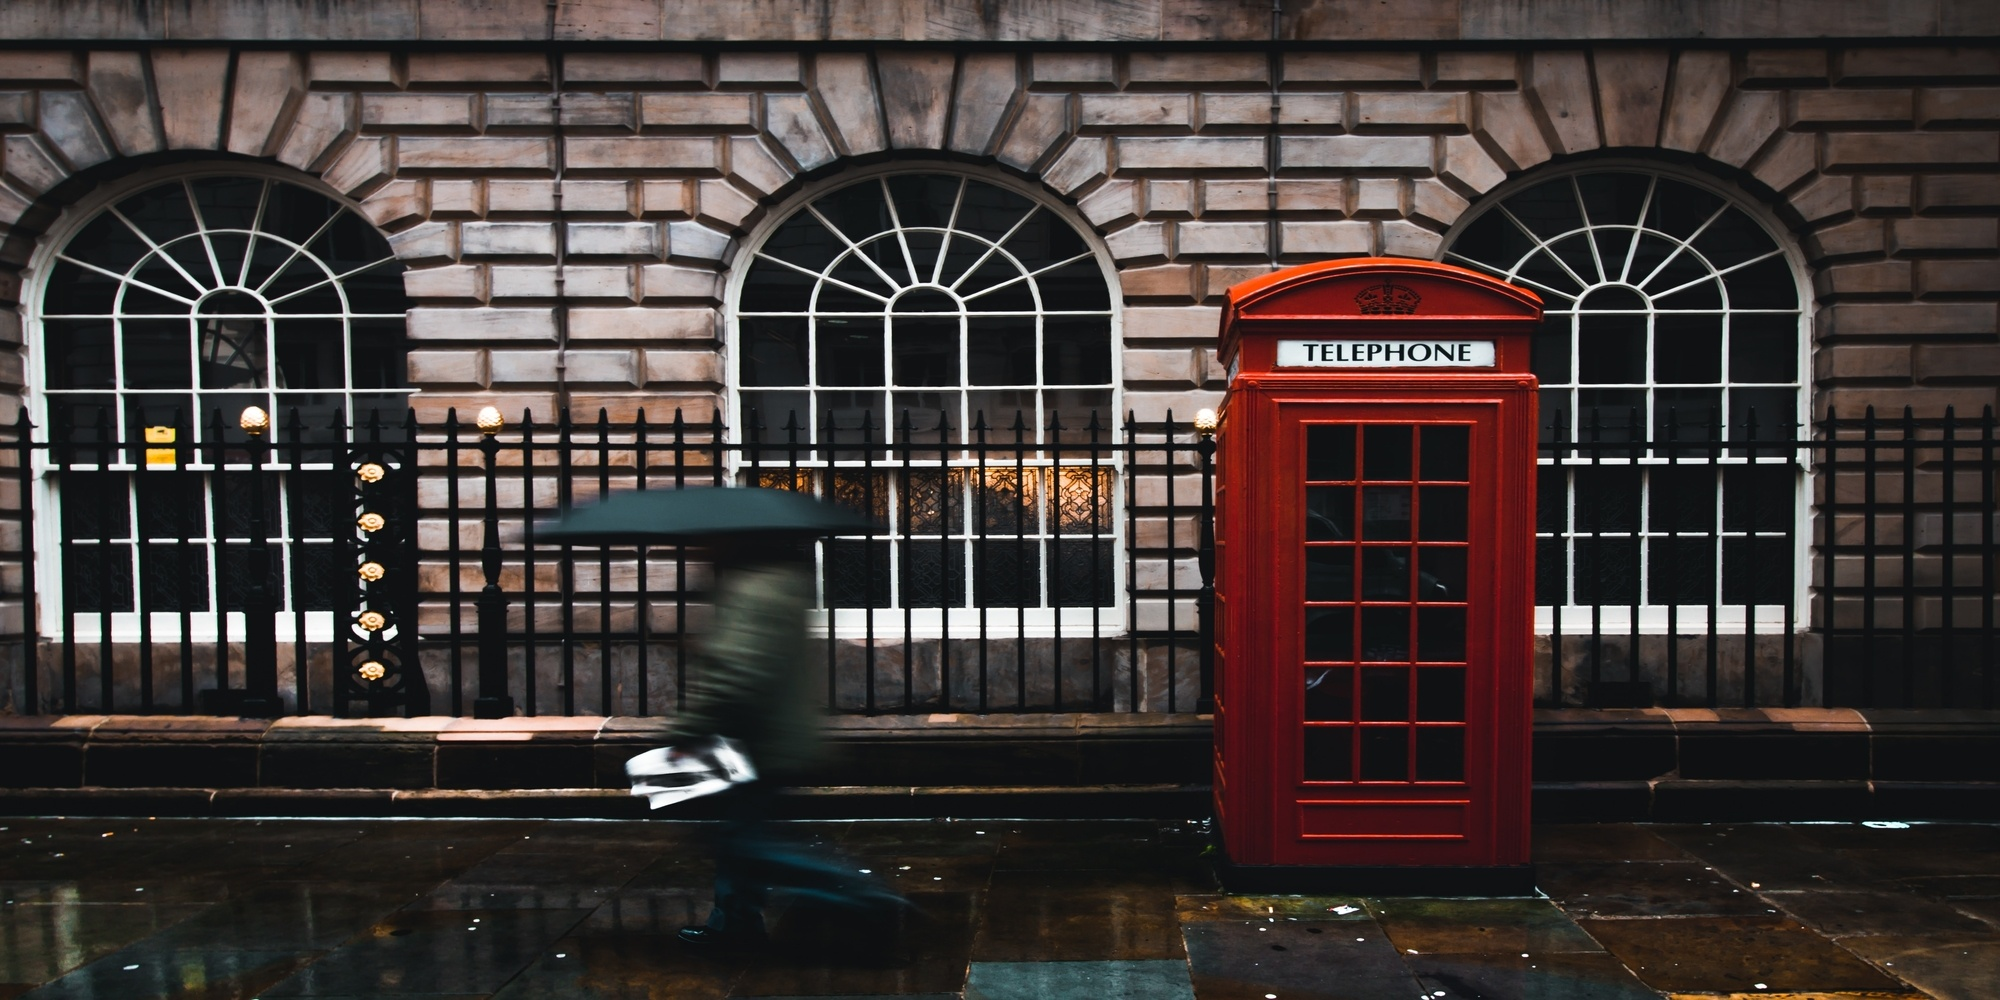 street in london with phone box and person walking